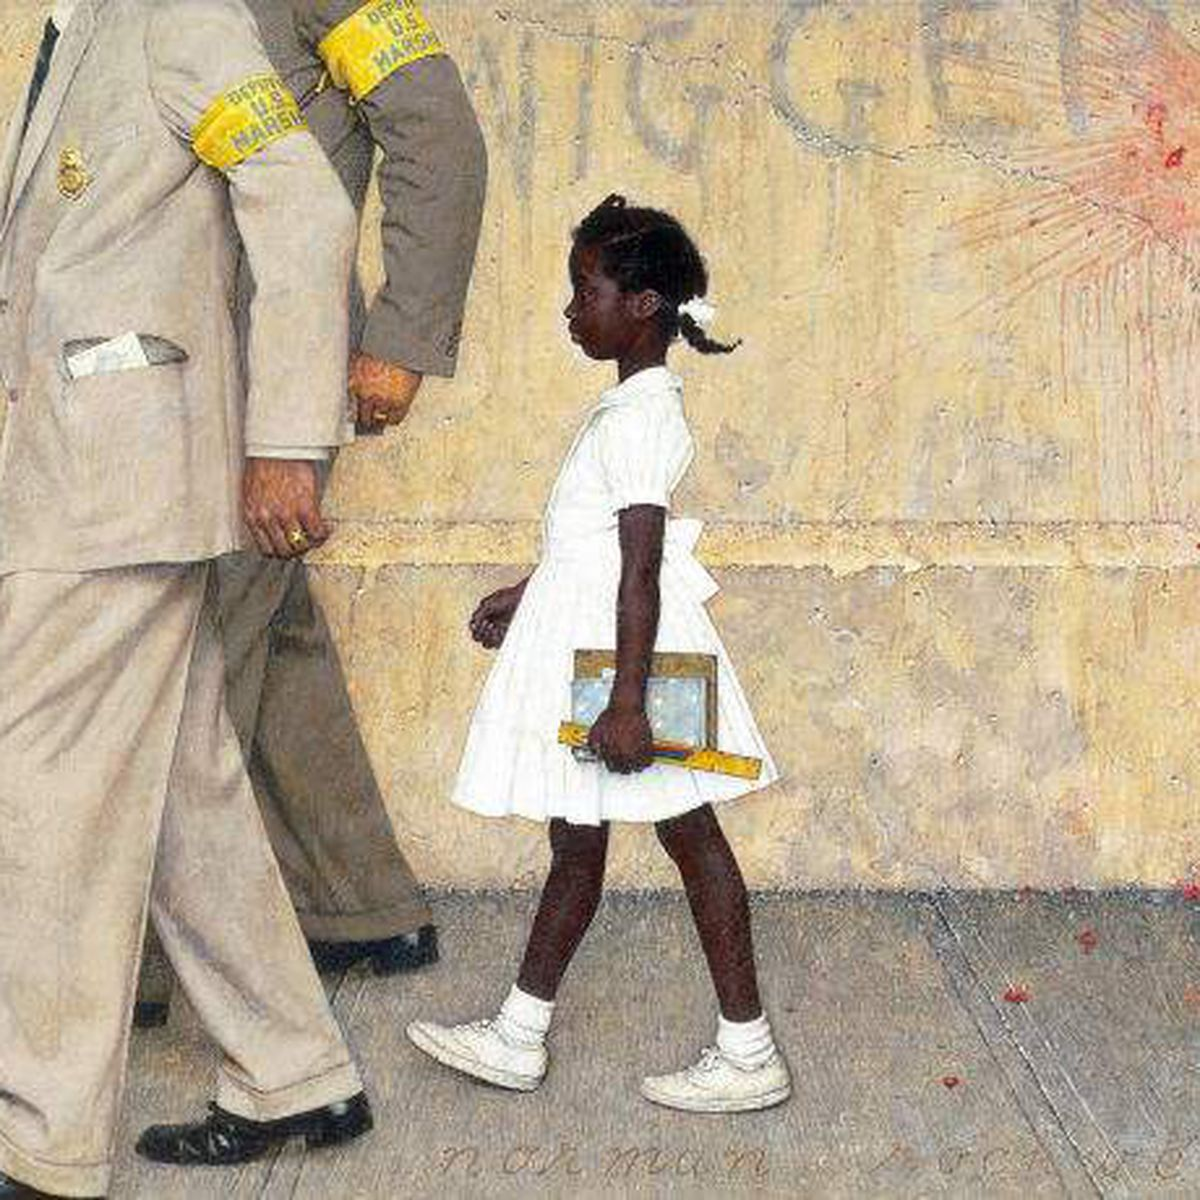 Ruby Bridges, age 6, being escorted into school by U.S. marshals, when she became the first Black student to integrate an elementary school in the South, by Norman Rockwell.   Madam Vice-President Kamala Harris & the silhouette of Ruby Bridges. By Bria Goeller